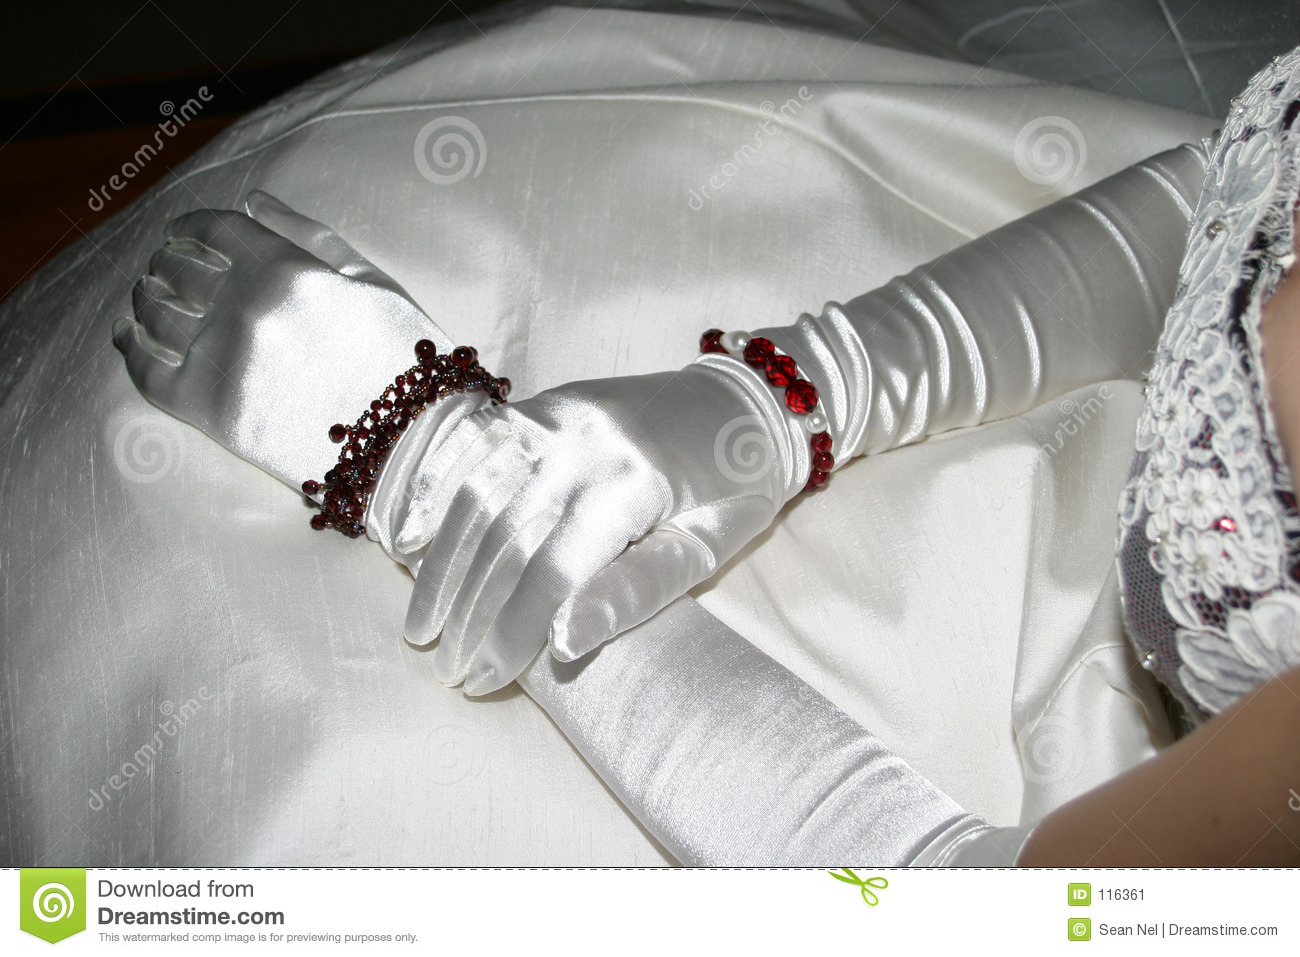 Download Silk Gloves stock image. Image of accessories, gown, hand - 116361